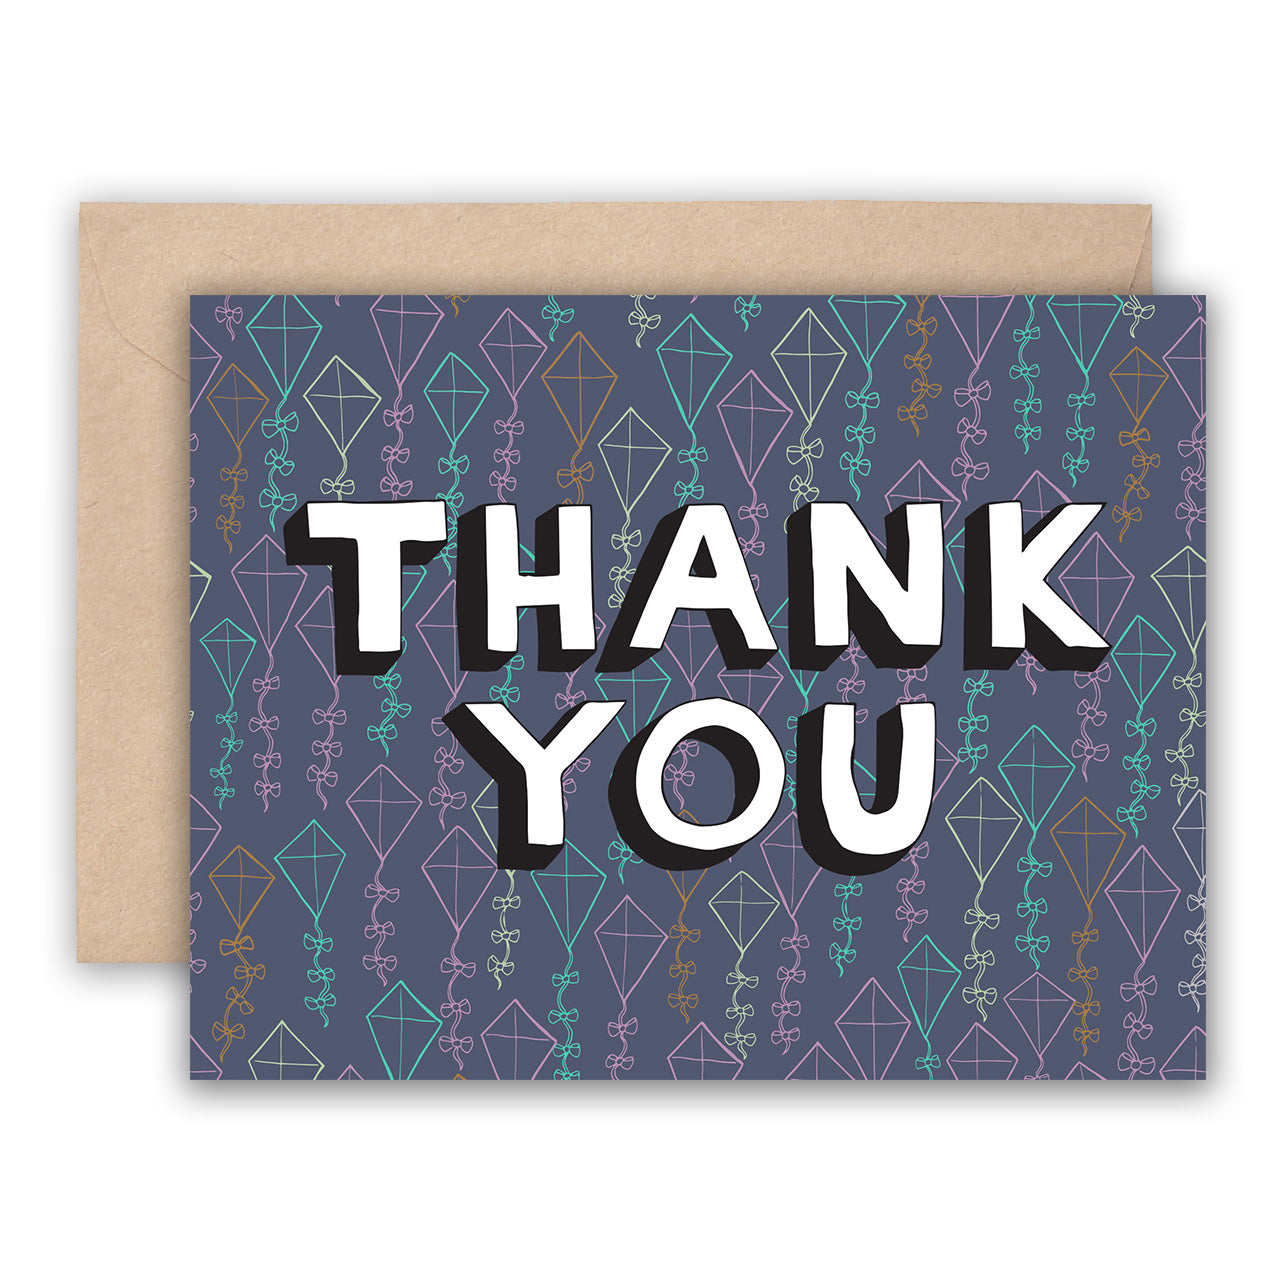 Thank You Card - Blue Geometric Kites, Jodi Lynn Burton, Handcrafted Home Goods and Gifts